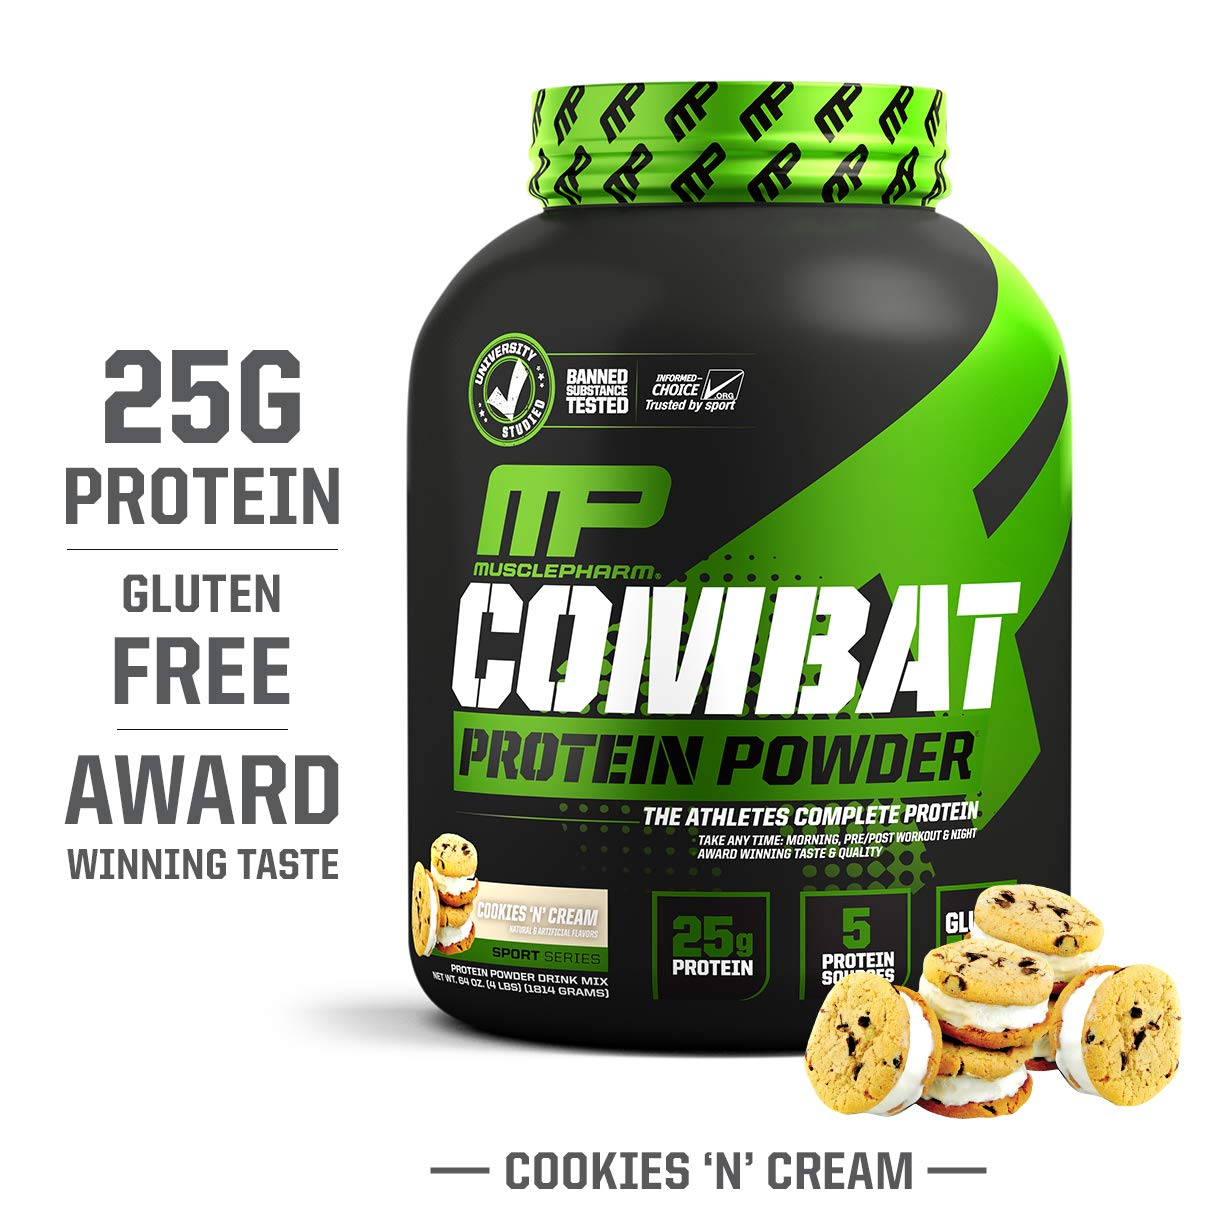 MusclePharm Combat Protein Powder, Essential Whey Protein Powder, Isolate Whey Protein, Casein and Egg Protein with BCAAs and Glutamine for Recovery, Cookies N Cream, 4-Pound, 52 Servings